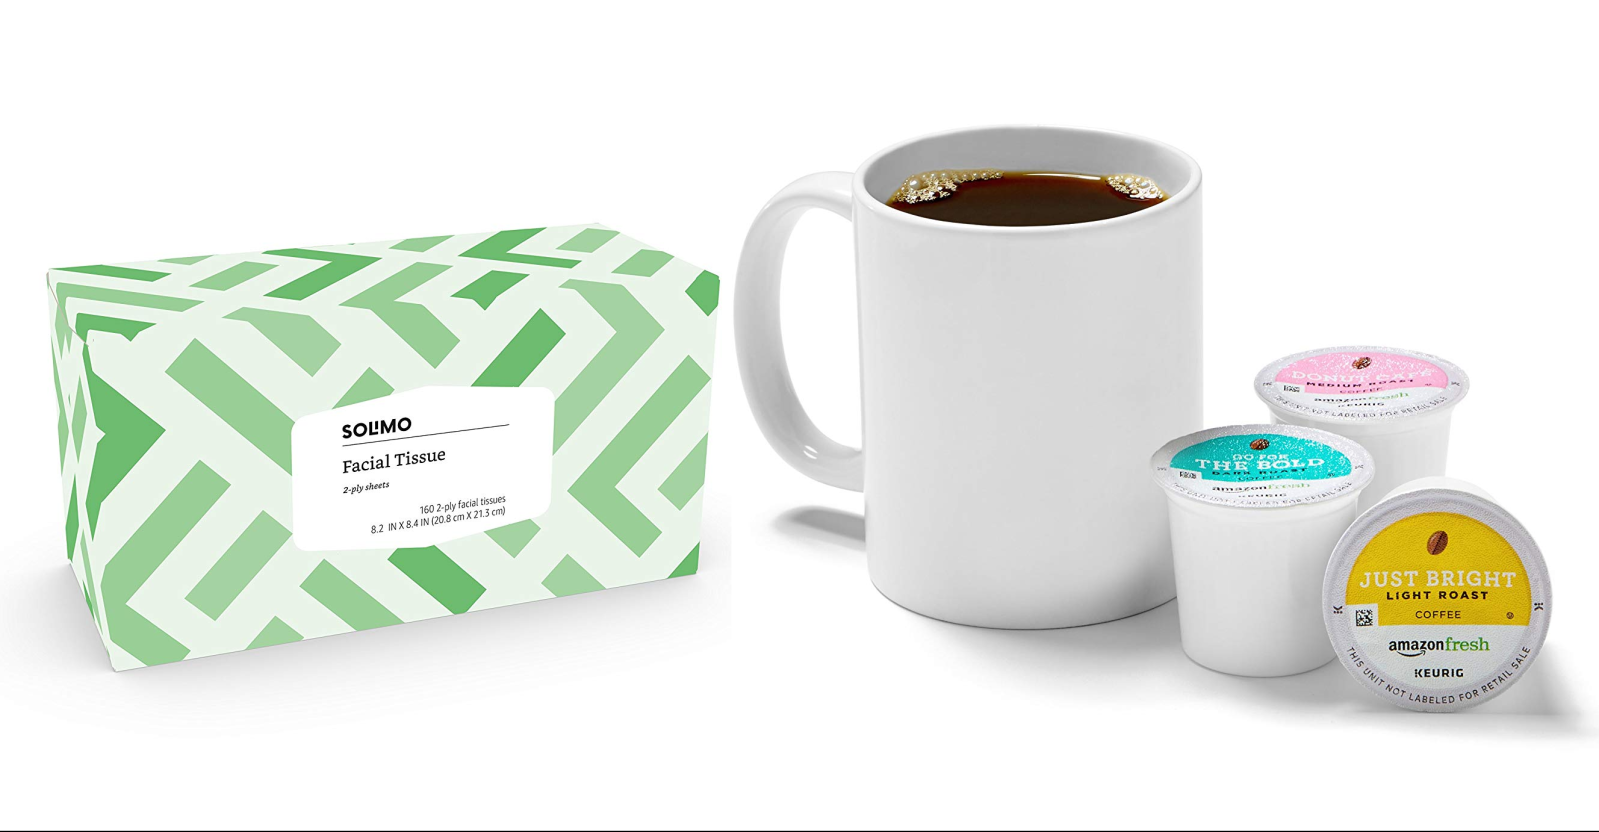 Amazon has its workplace essentials at 25% off today only: Tissues, snacks, coffee, more